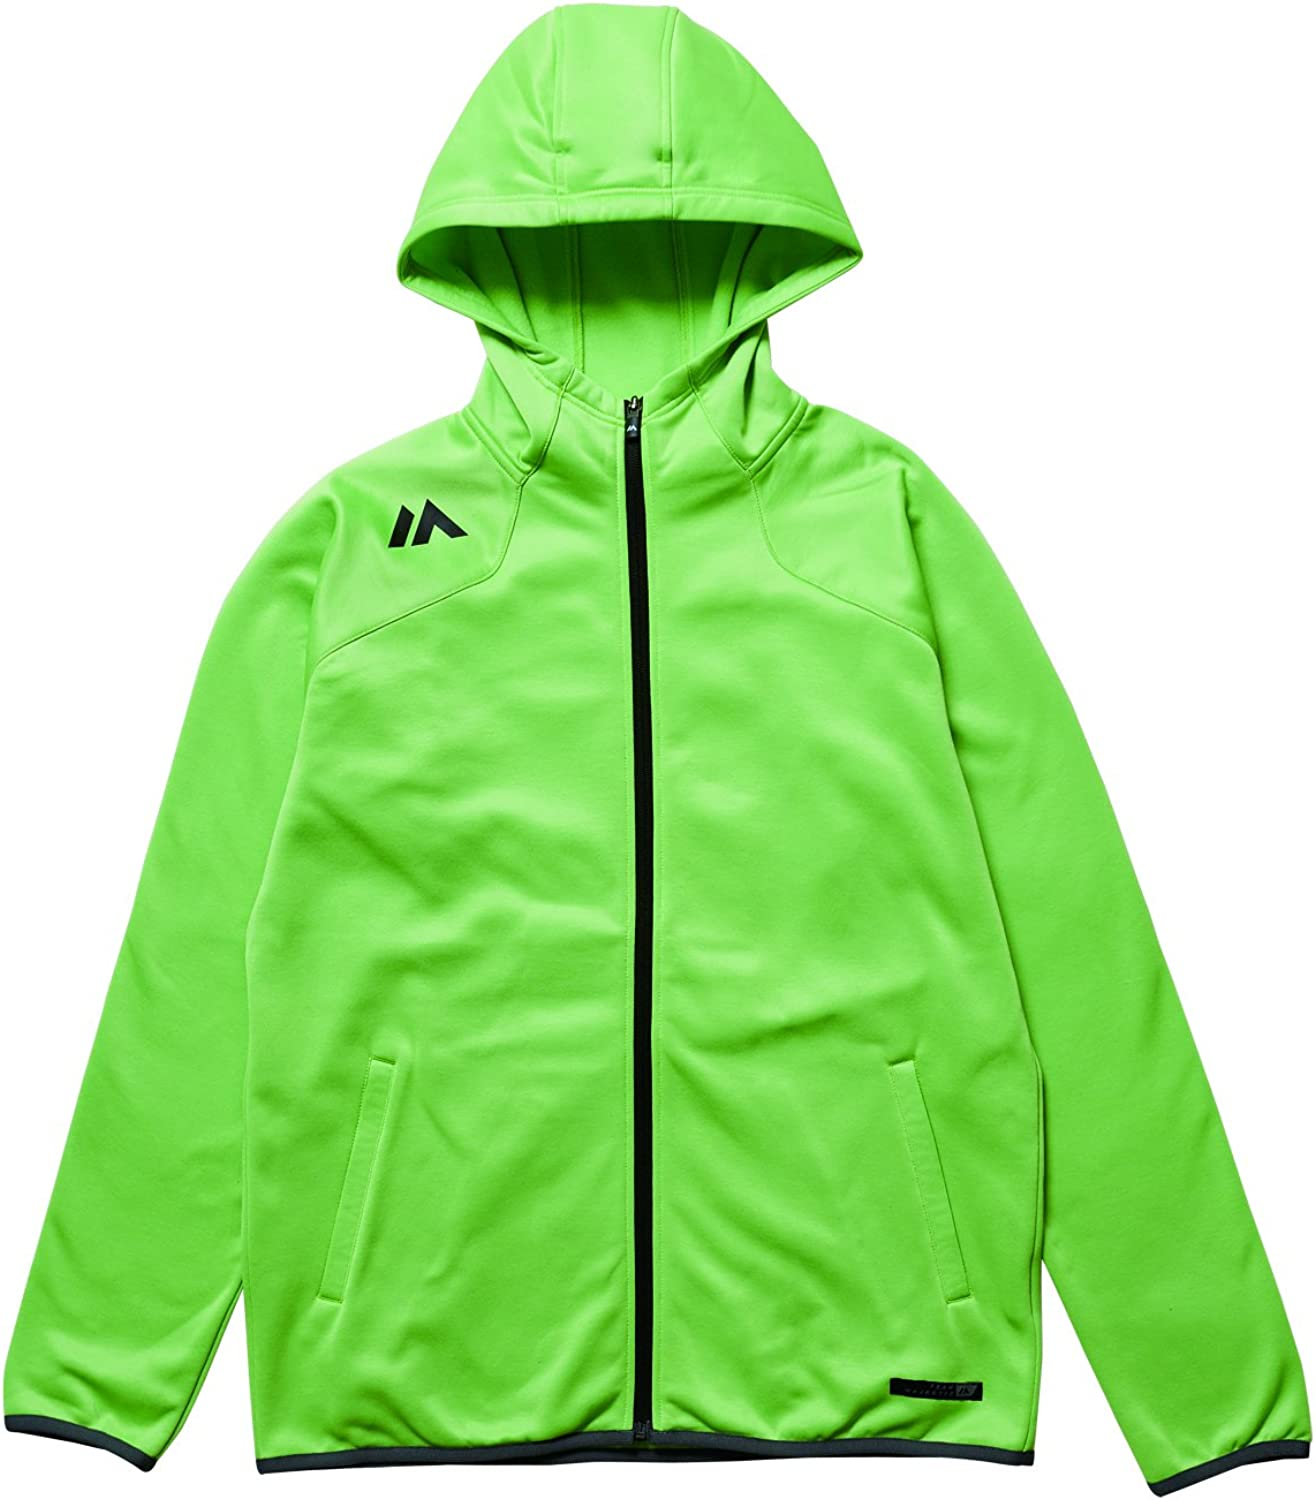 Majestic (Majestic) Authentic Training L.Weight Hooded Jacket [authentic training Parker jacket] XM23LIM5MAJ0019 lime M